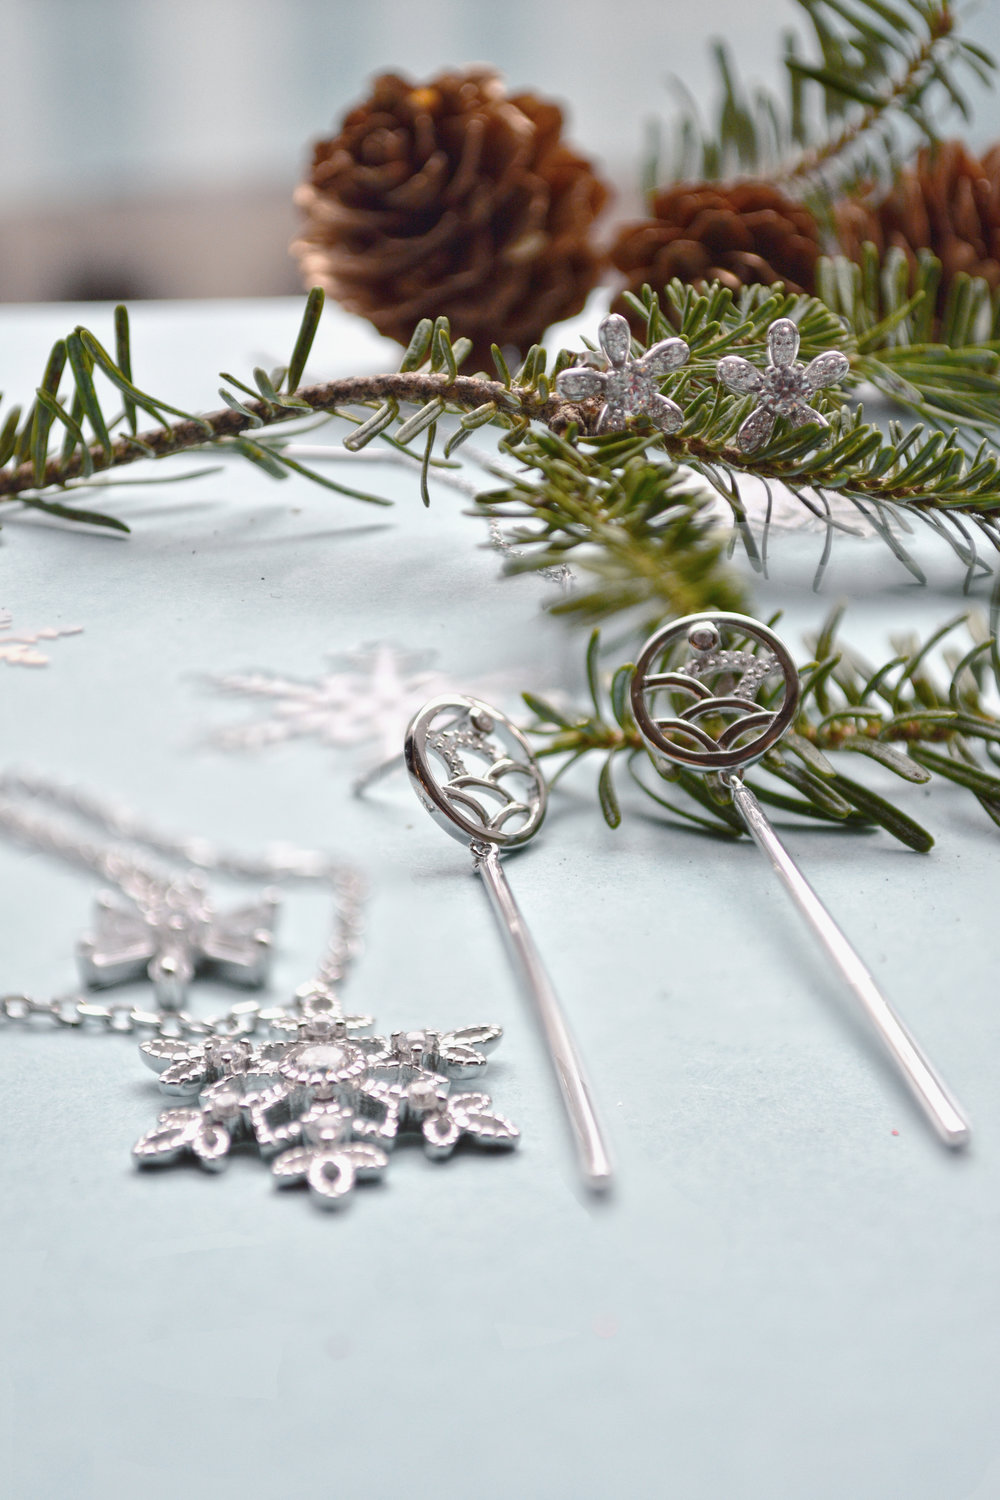 Holiday creatives from AcePicked's sterling silver jewelry line.